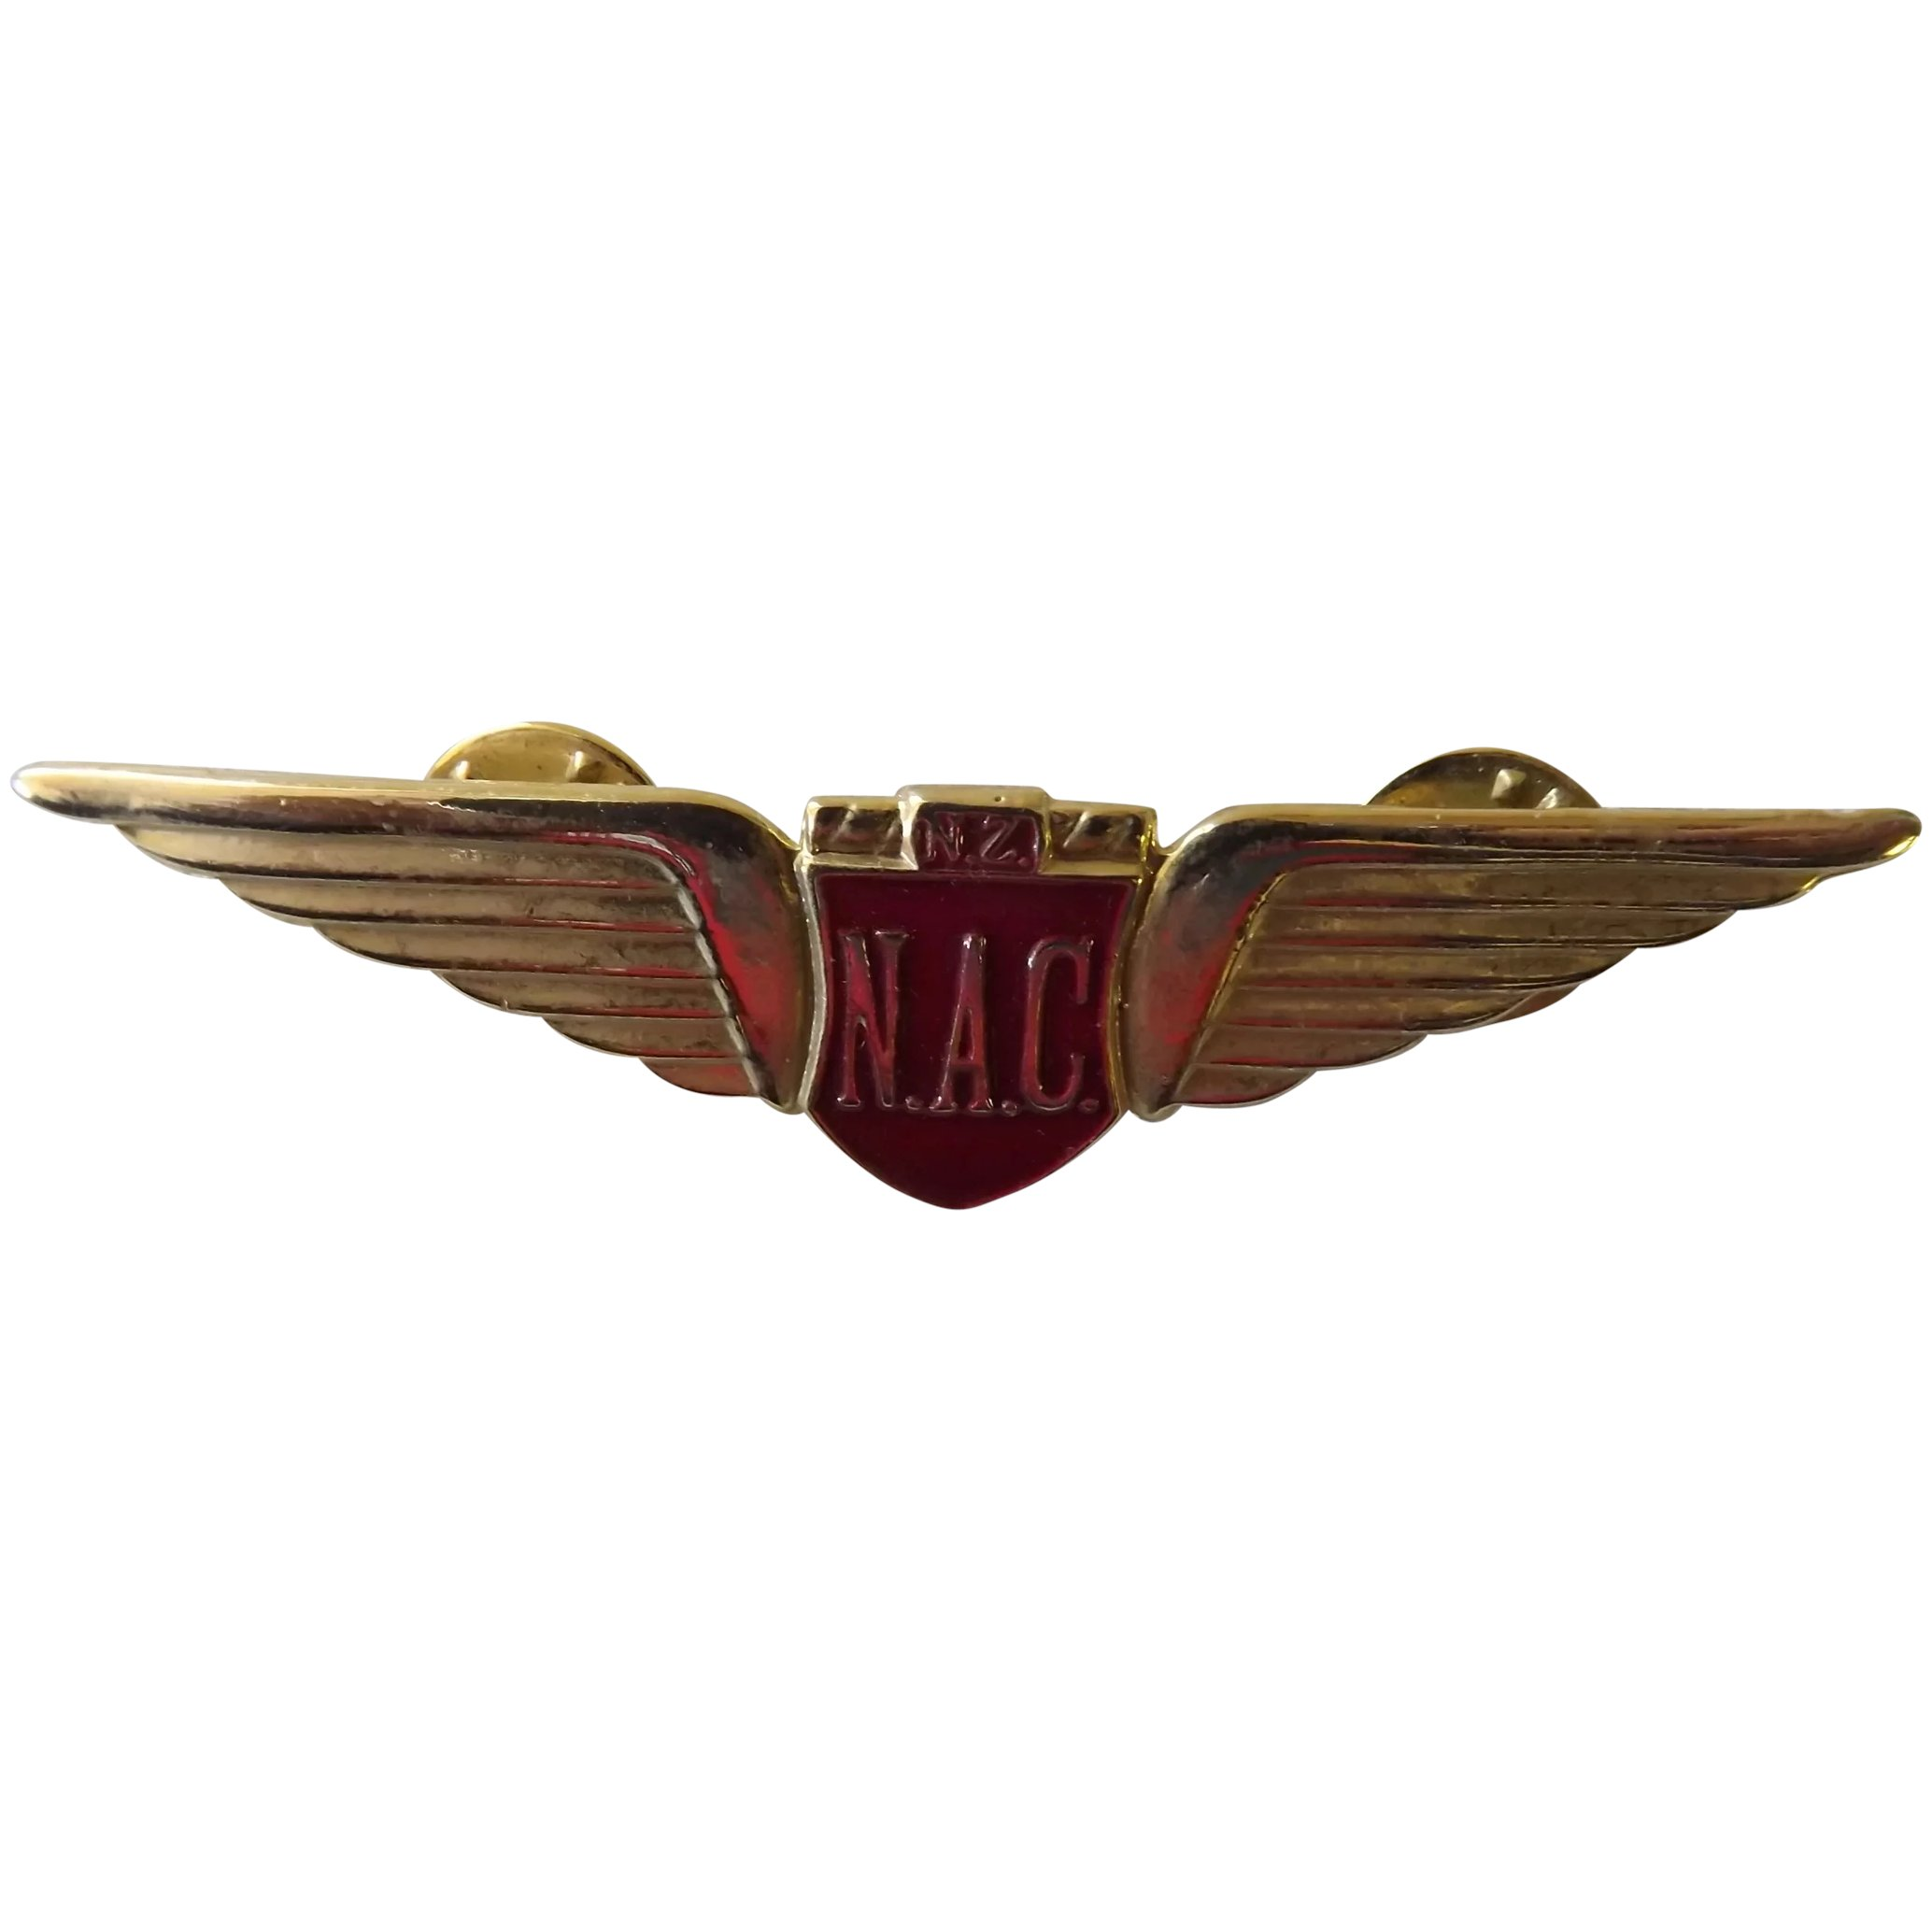 National Airways Corporation (N.A.C) of New Zealand Pilots Wings